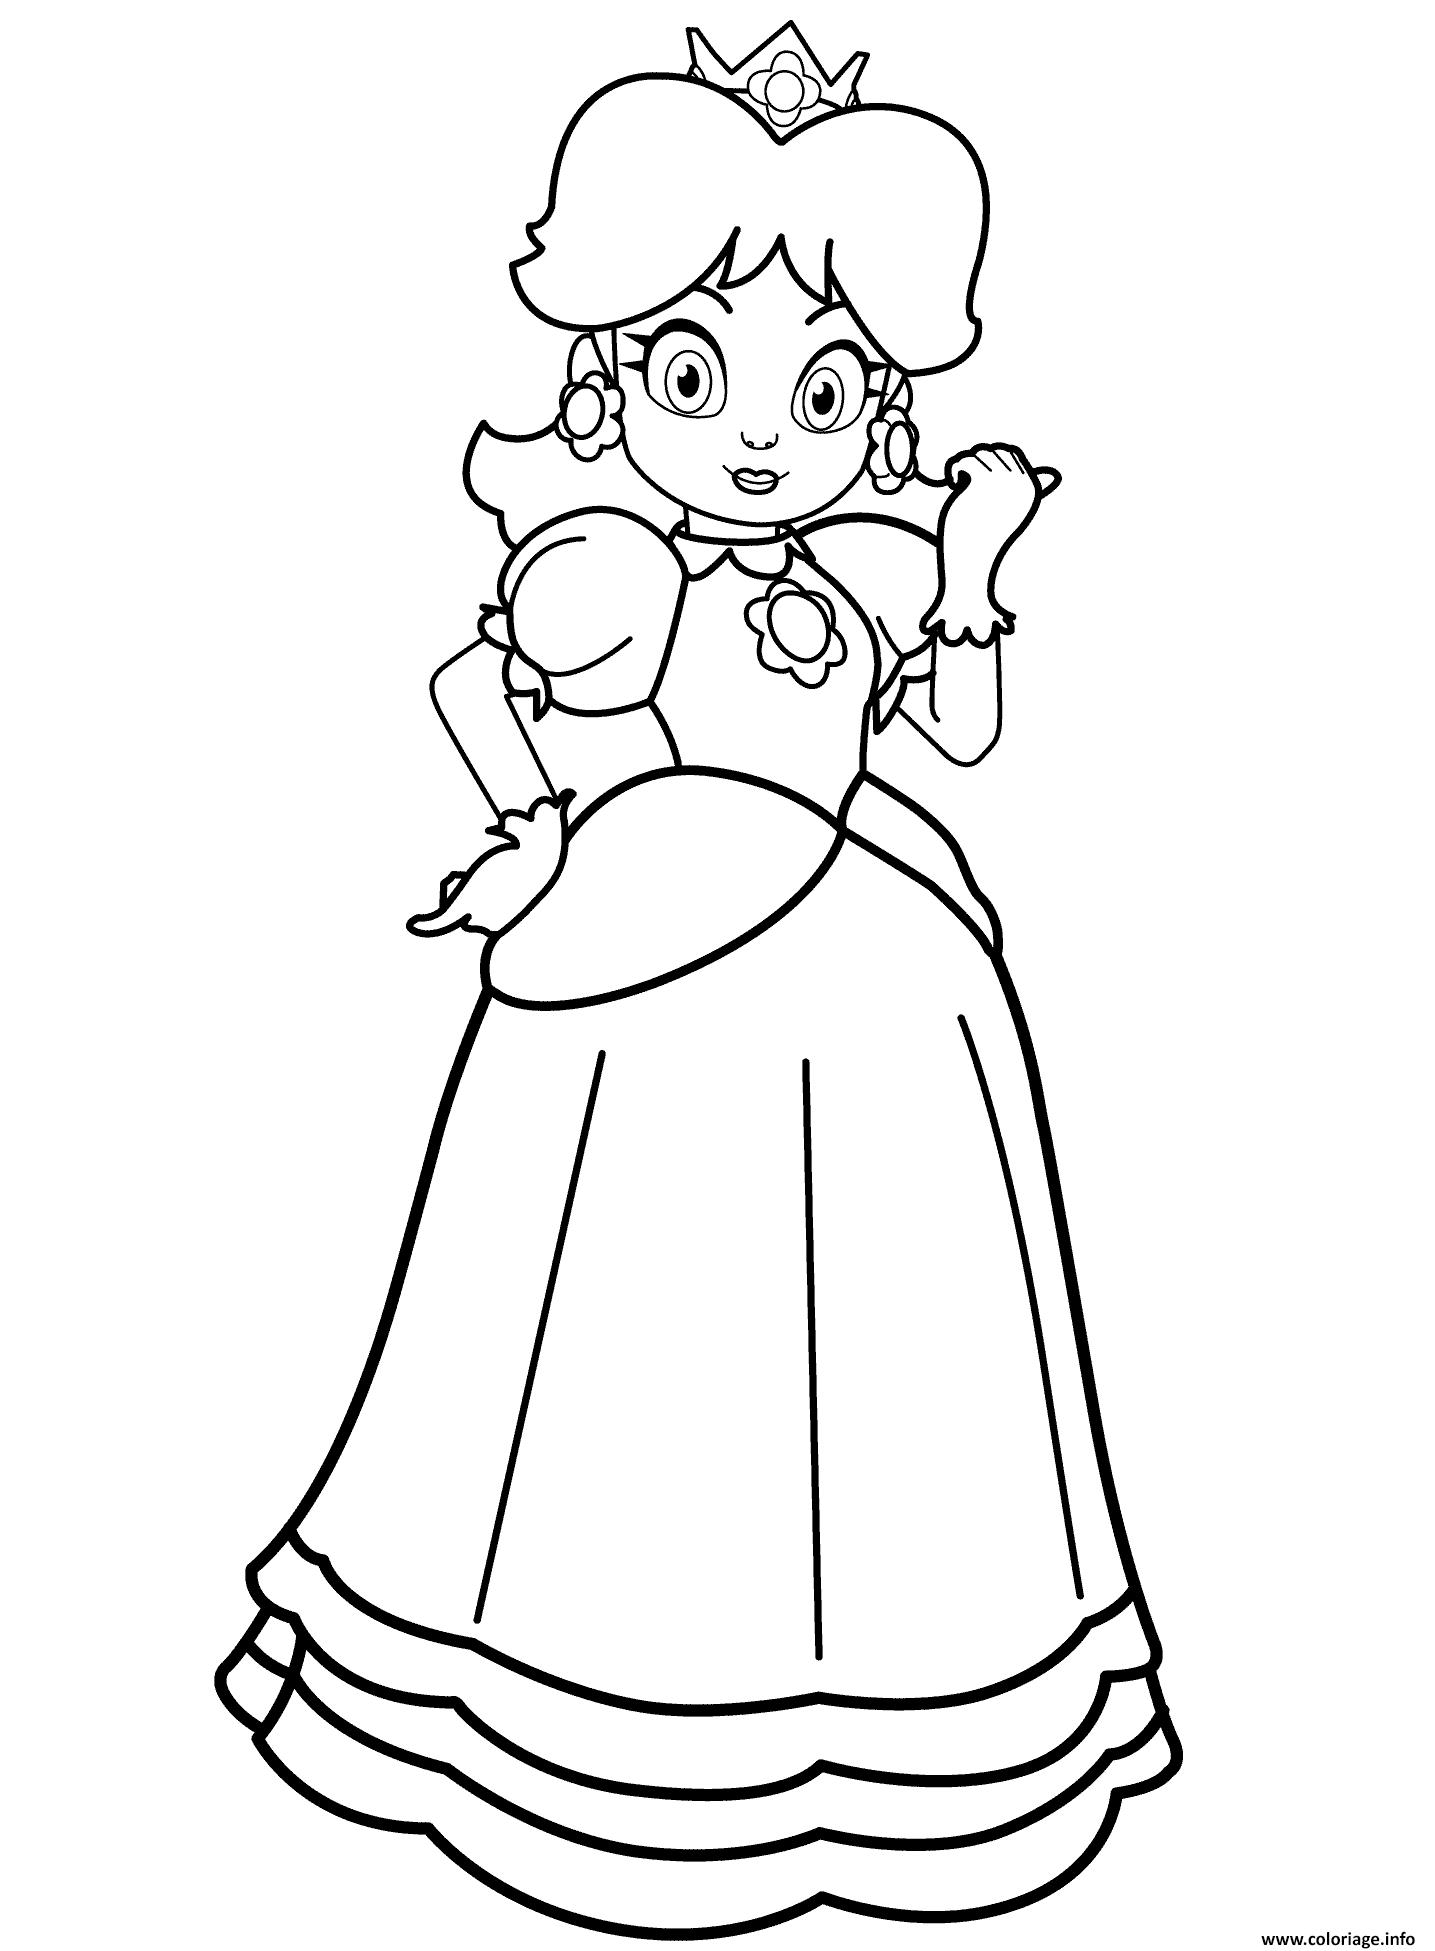 Coloriage Princess Daisy Dessin